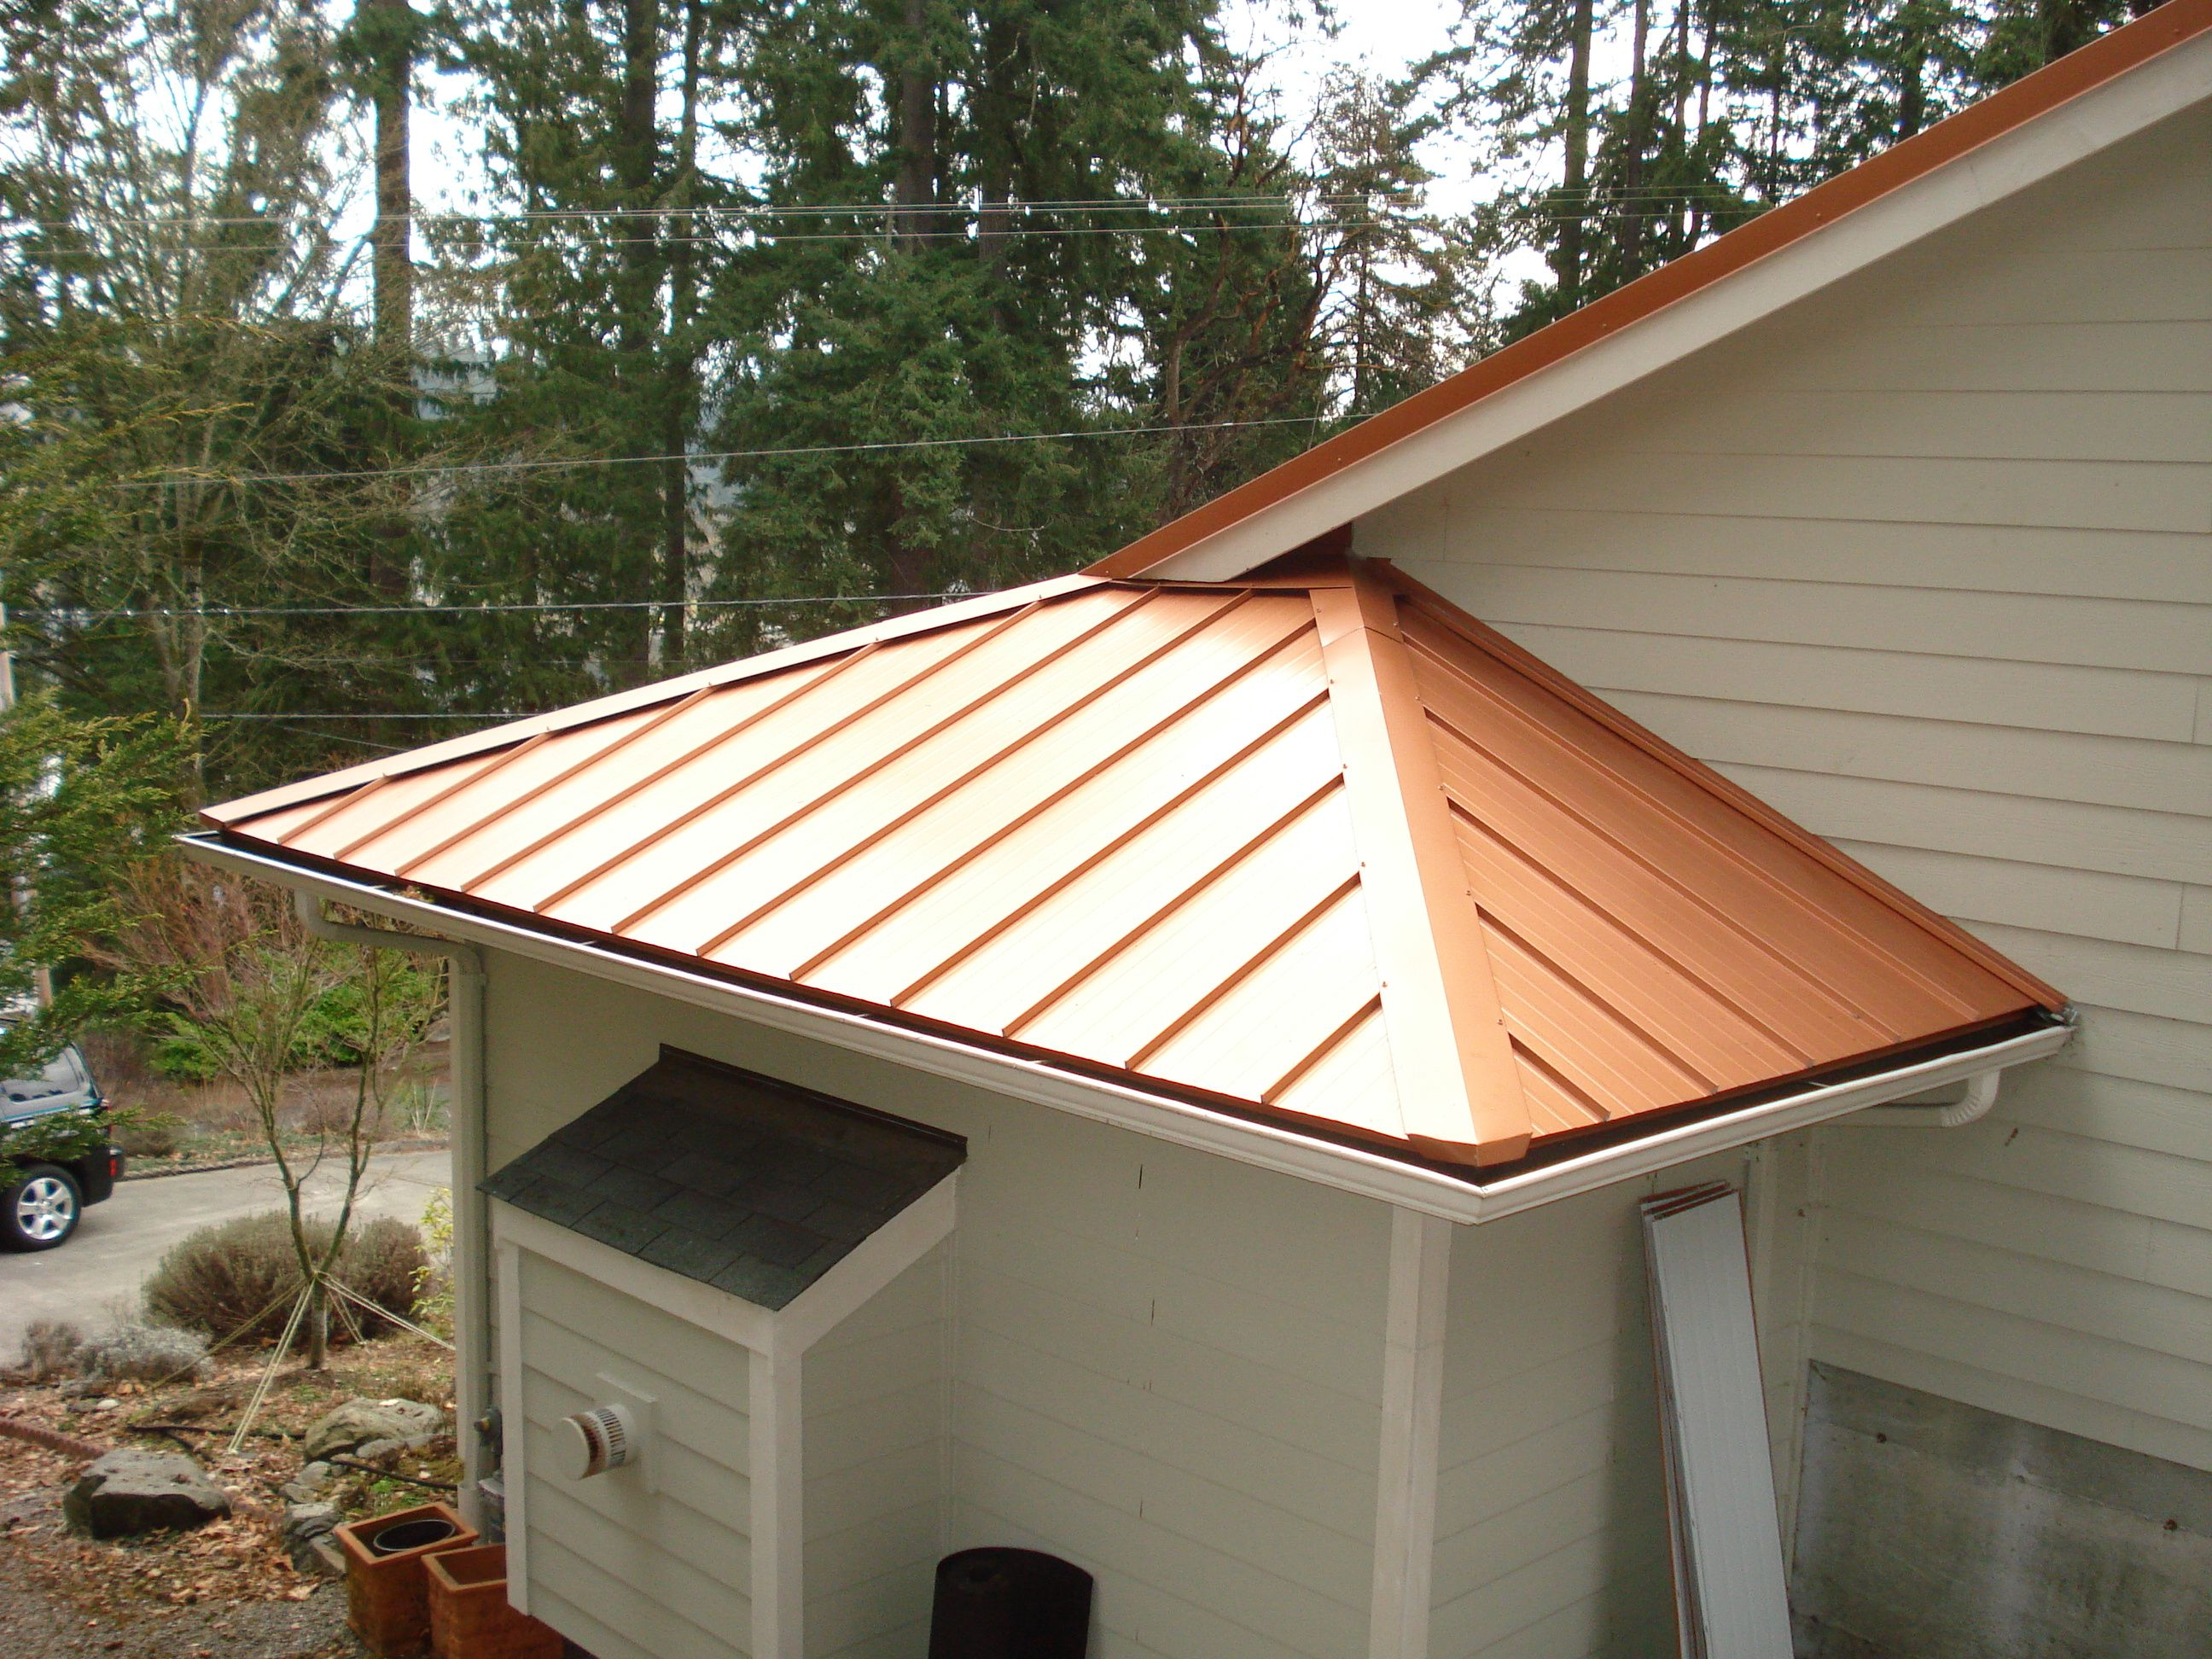 Best Copper Penny Metal Roofing Photos Skyline 114 16 Copper 640 x 480